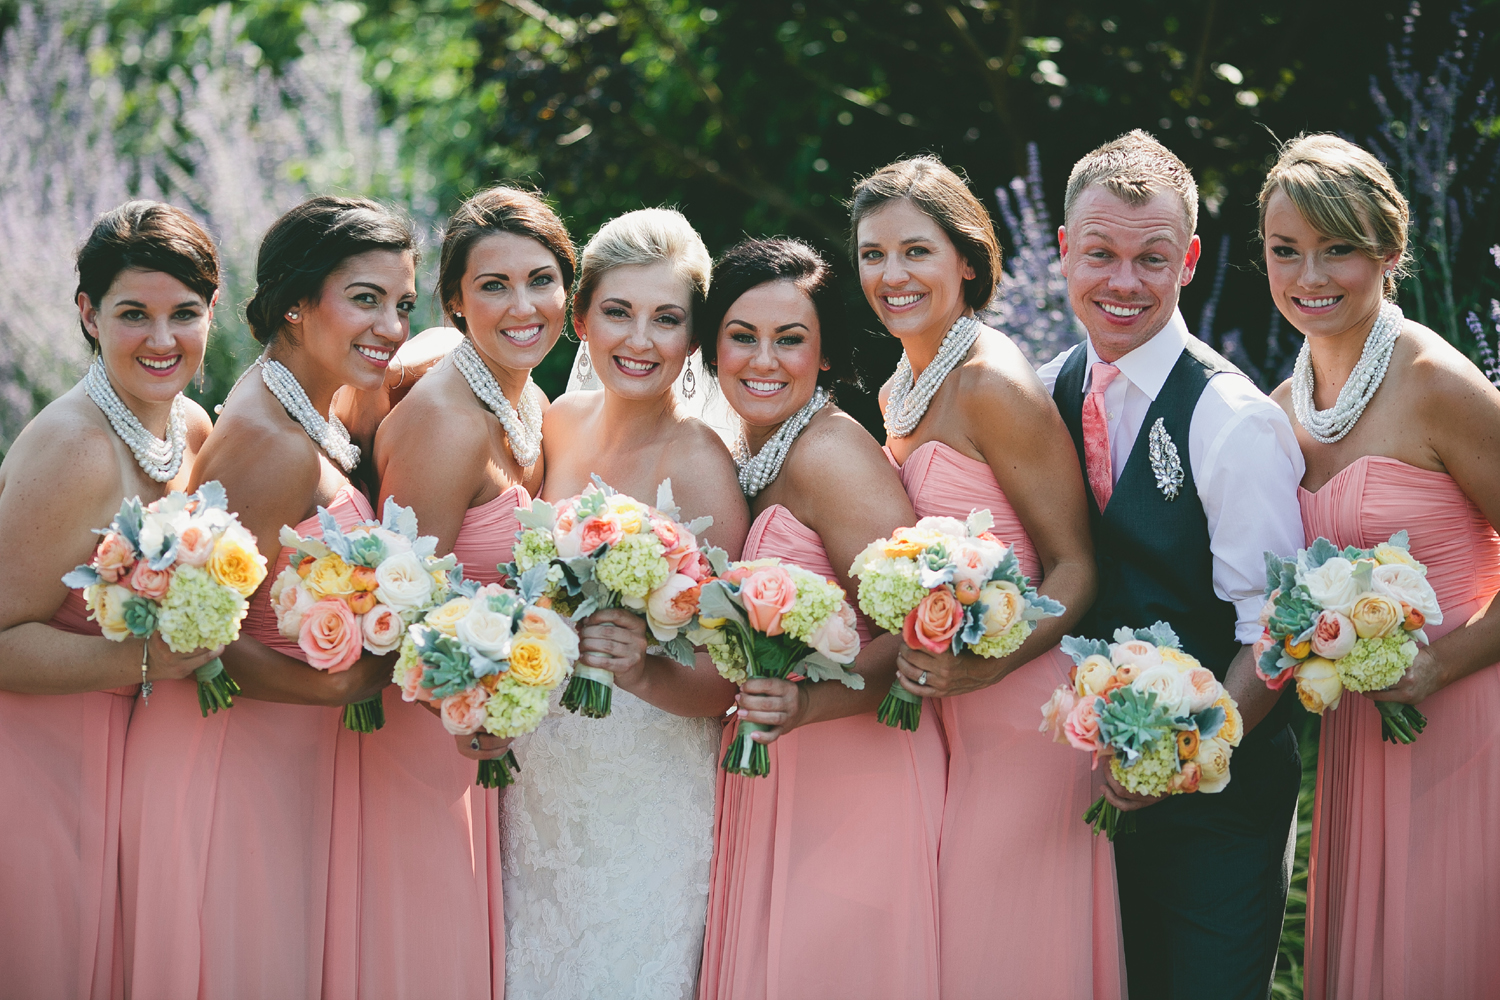 Bridalbliss.com | Portland Seattle Bend Wedding | Oregon Washington Event Planning and Design | Yasmin Khajavi Photography